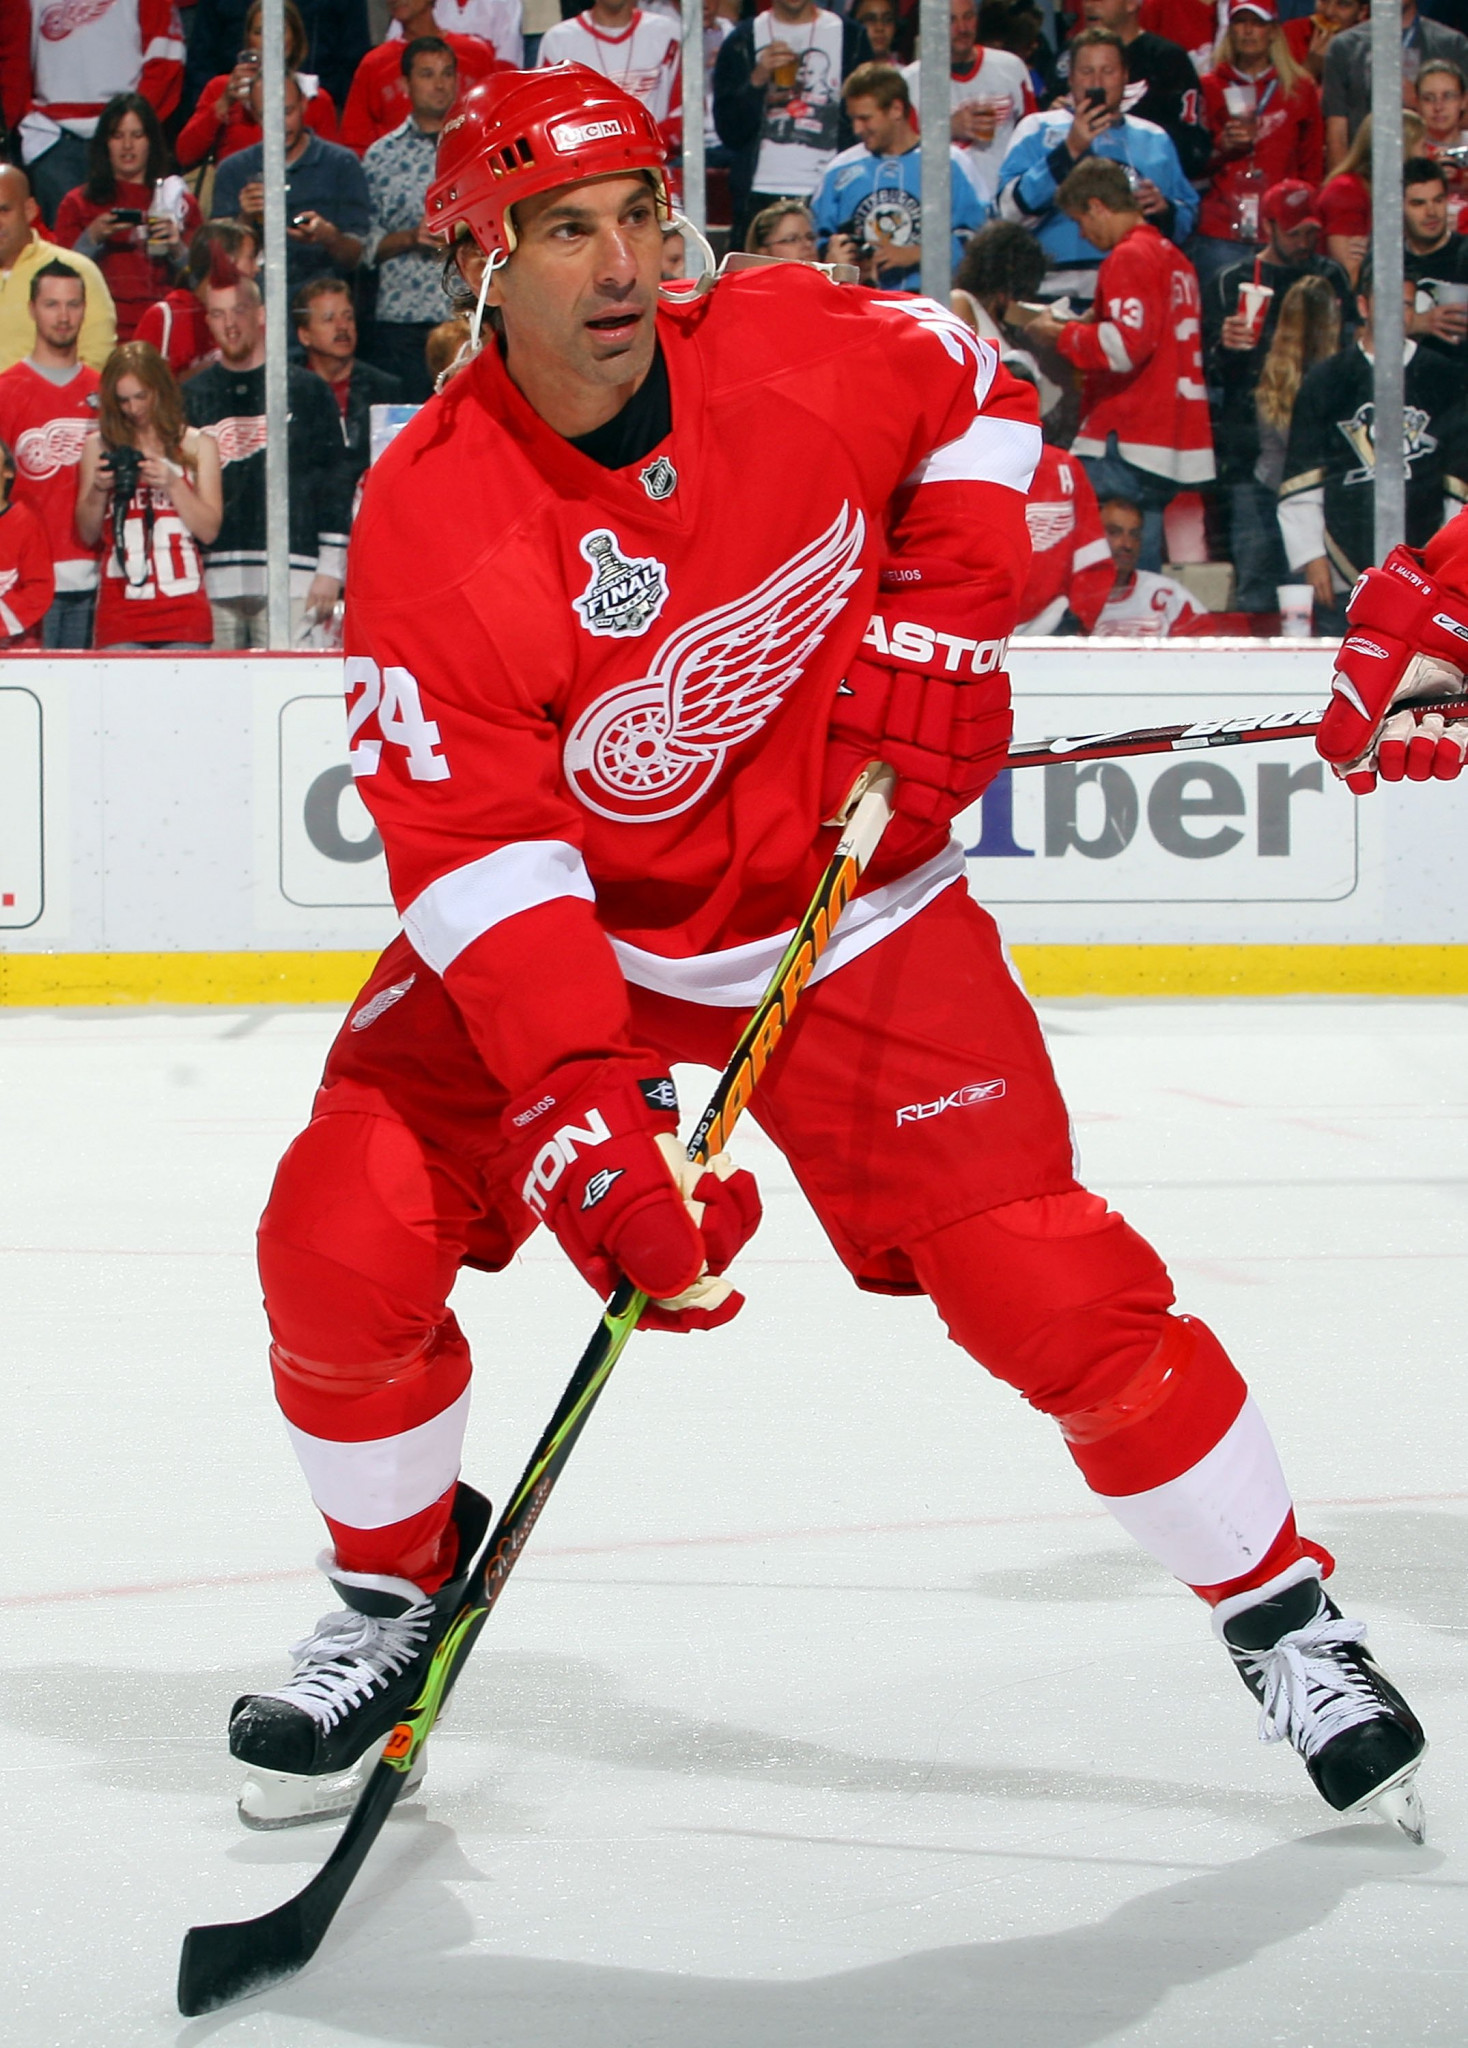 Chris Chelios' career spanned almost 30 years ©Getty Images